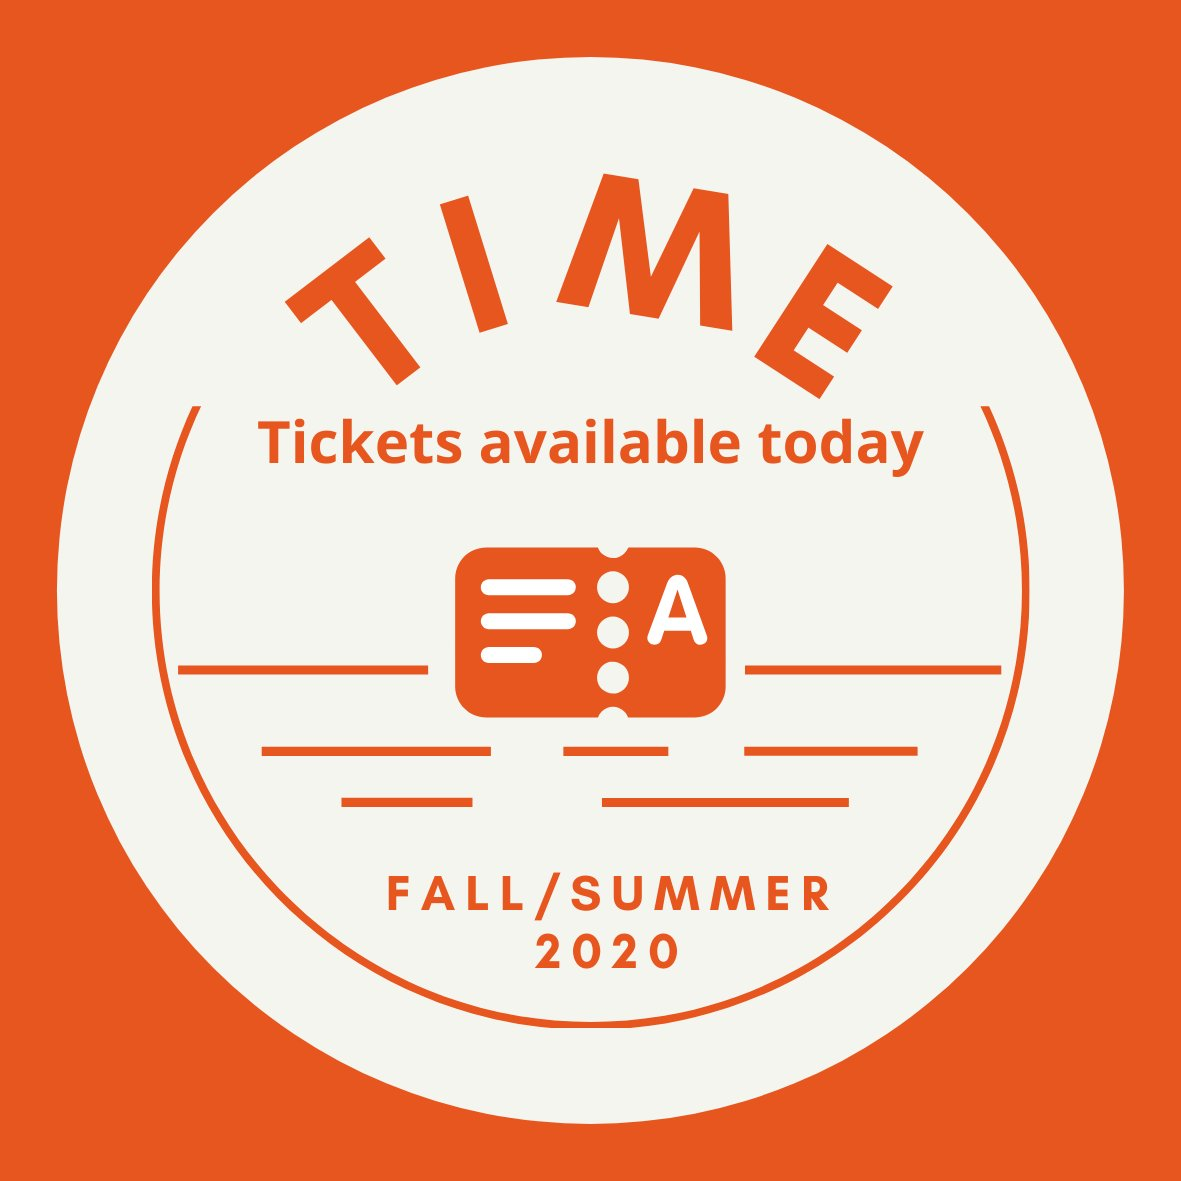 Ace Illinois On Twitter Time Tickets Are Available Today Go Check Out Your Registration Time For Summer And Fall On The Uiuc Self Service Website Remember Ace Advisors Ares Still Available To Help You